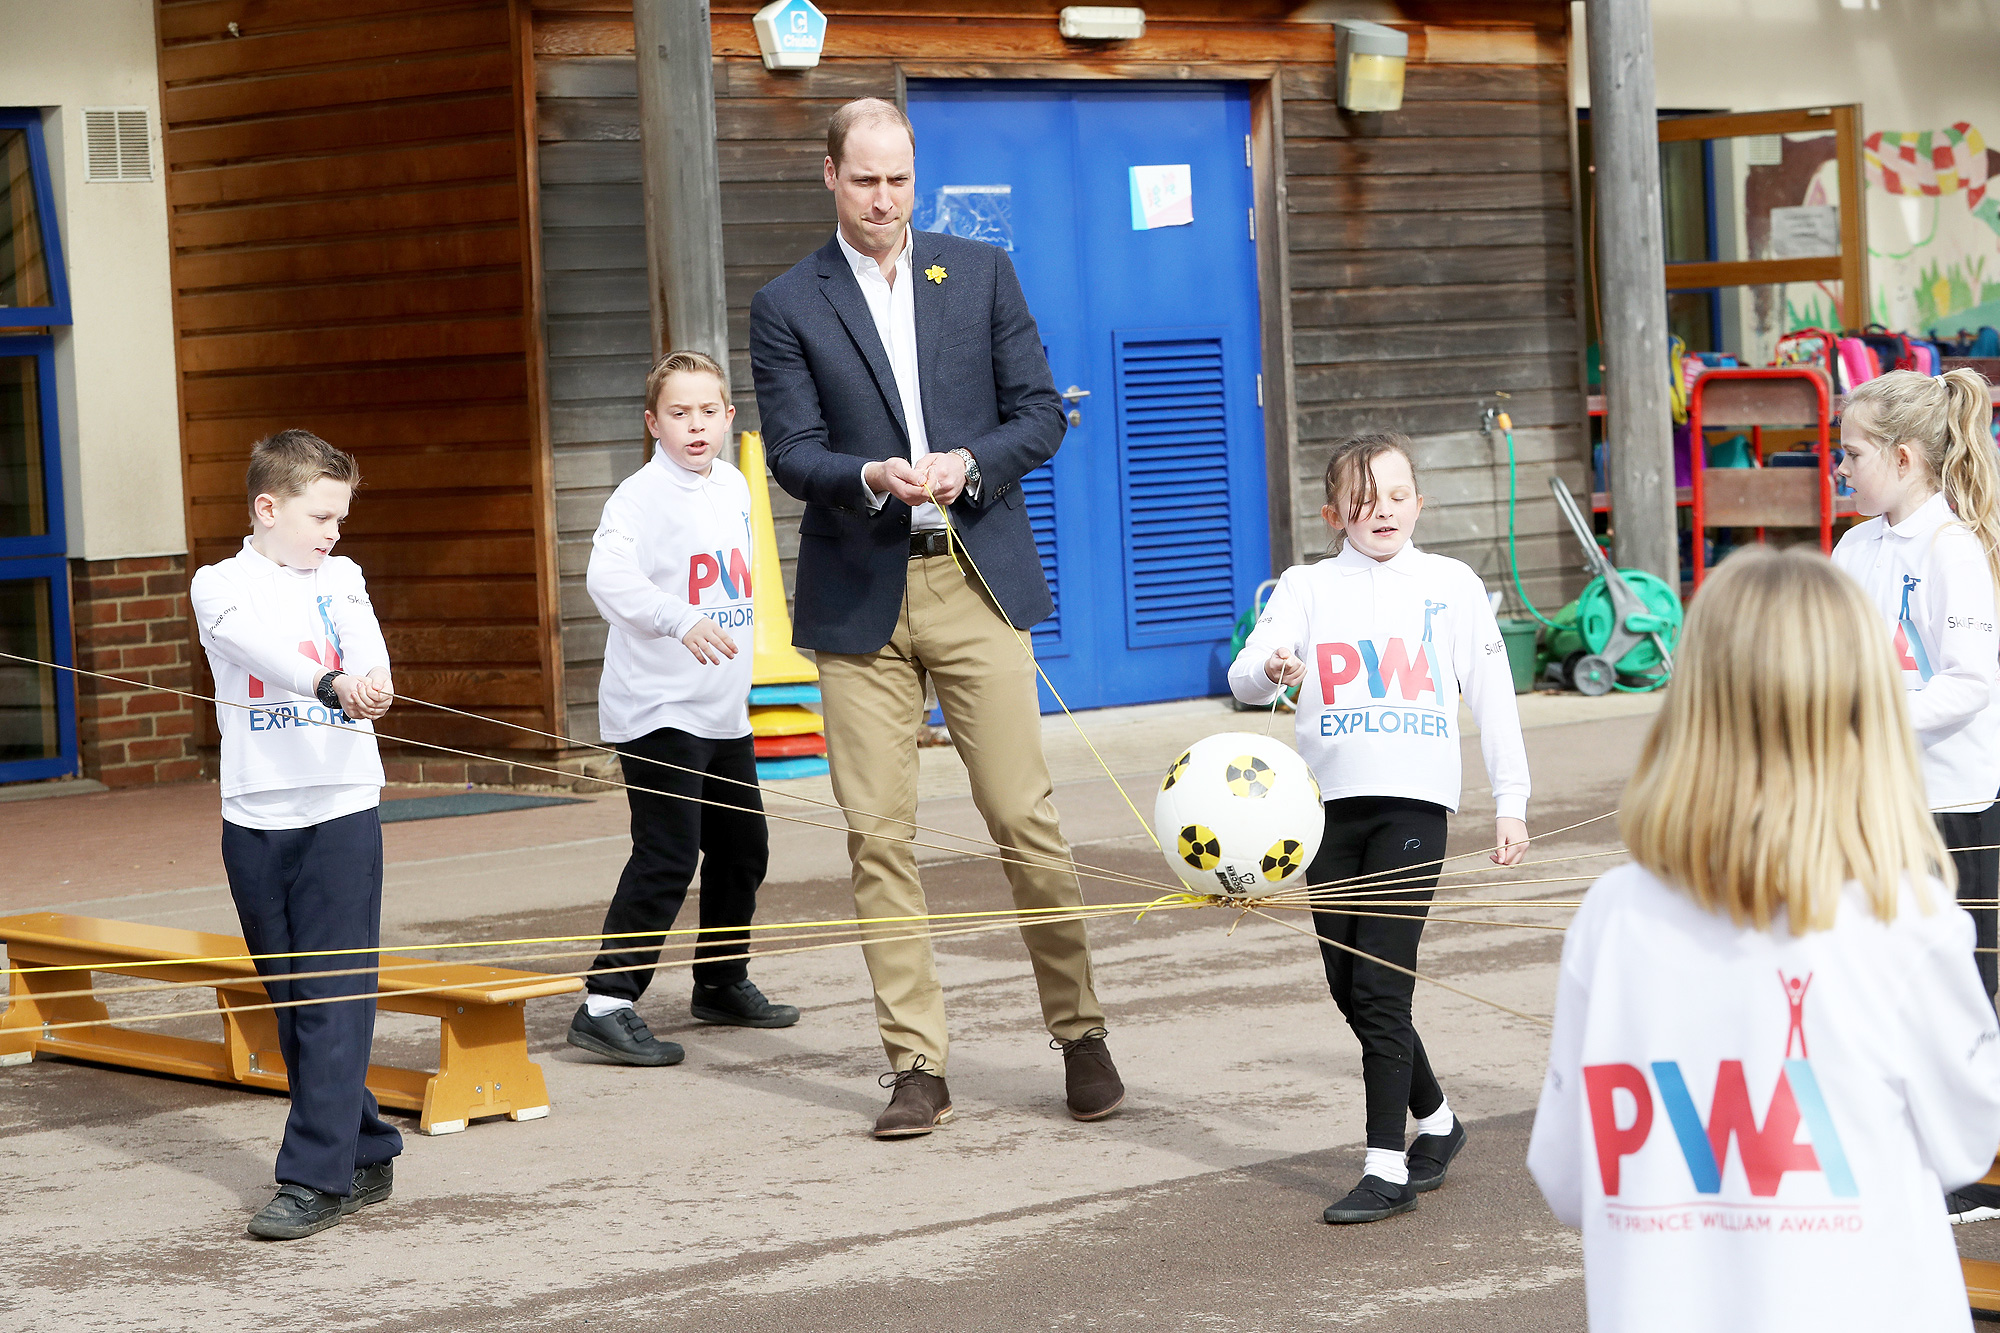 The Duke Of Cambridge Launches The SkillForce Prince William Award